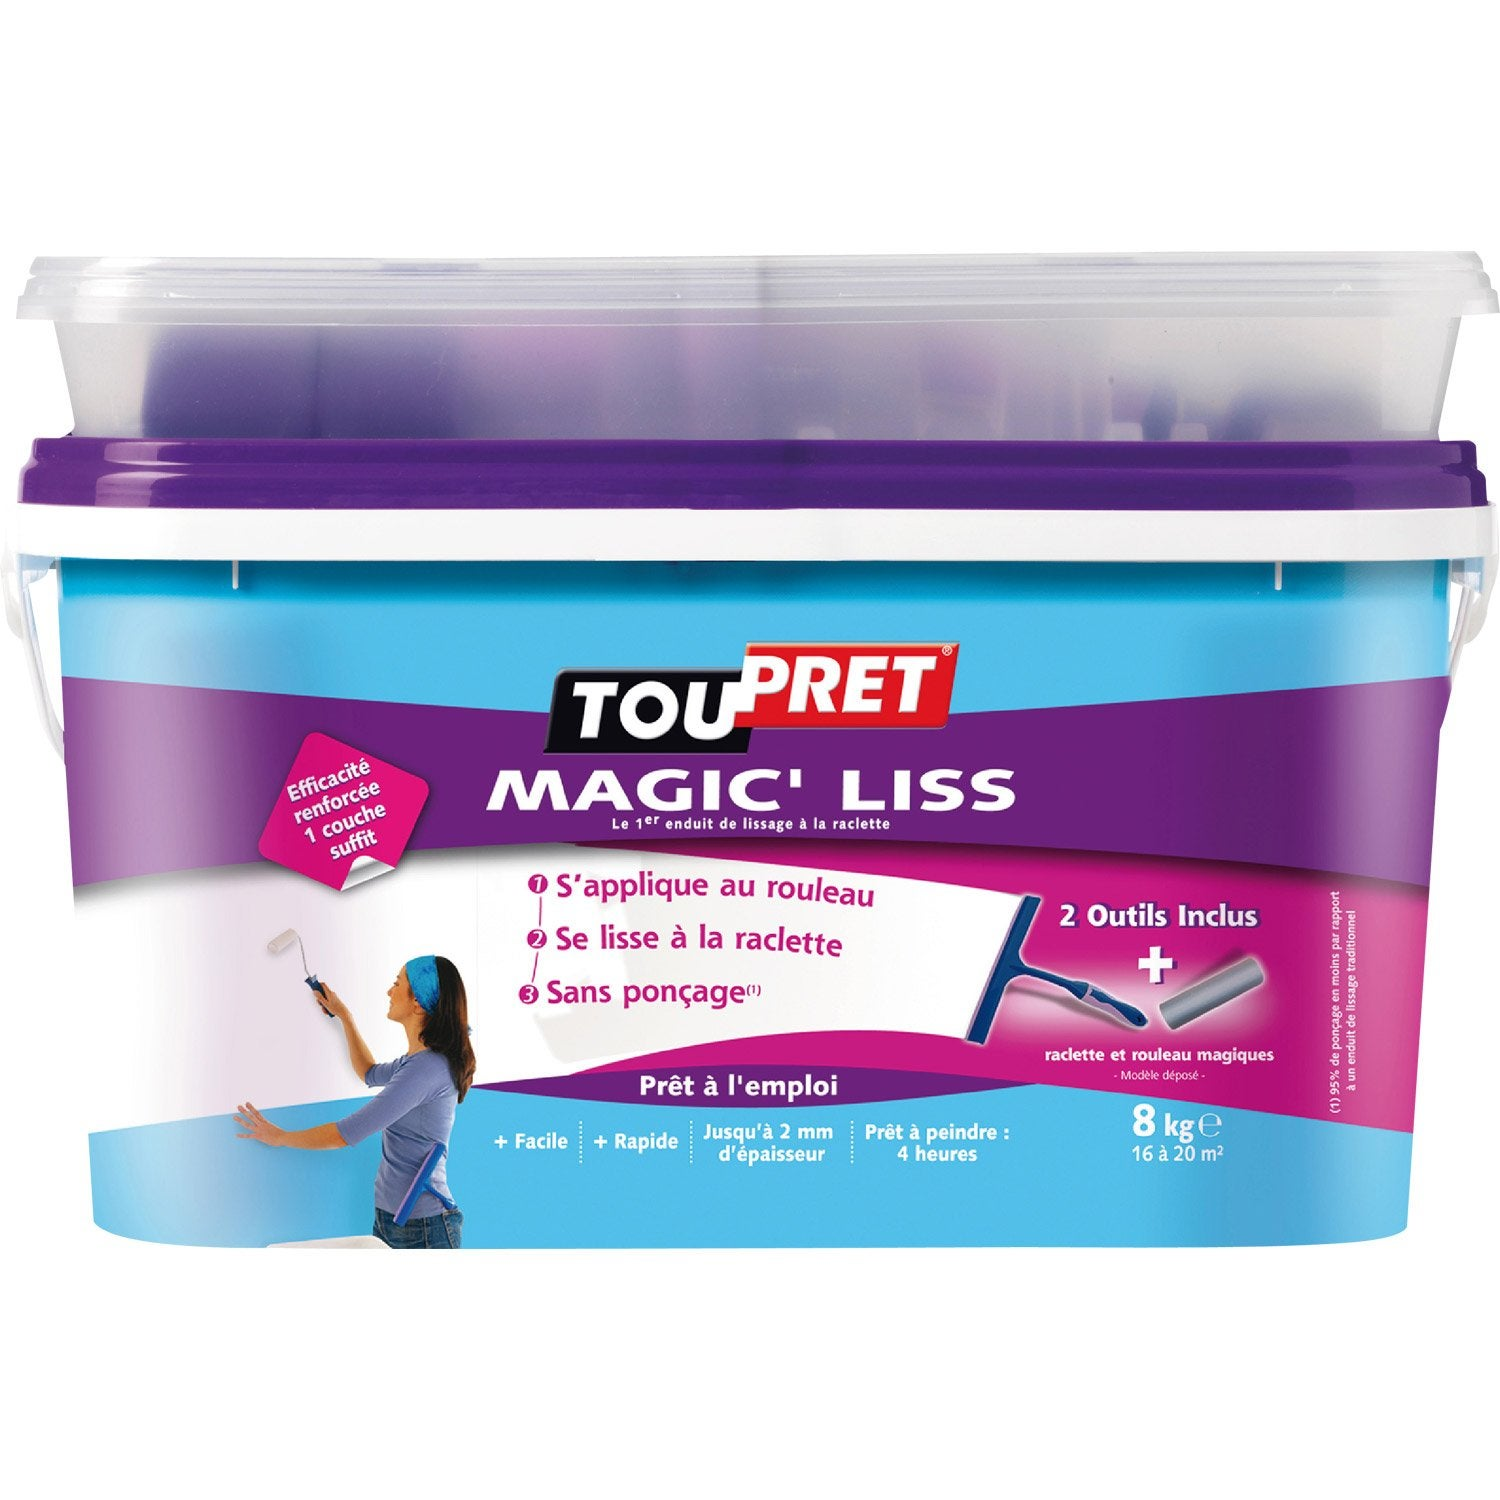 Enduit de lissage p te magic liss toupret 8 kg leroy merlin for Video enduit de lissage